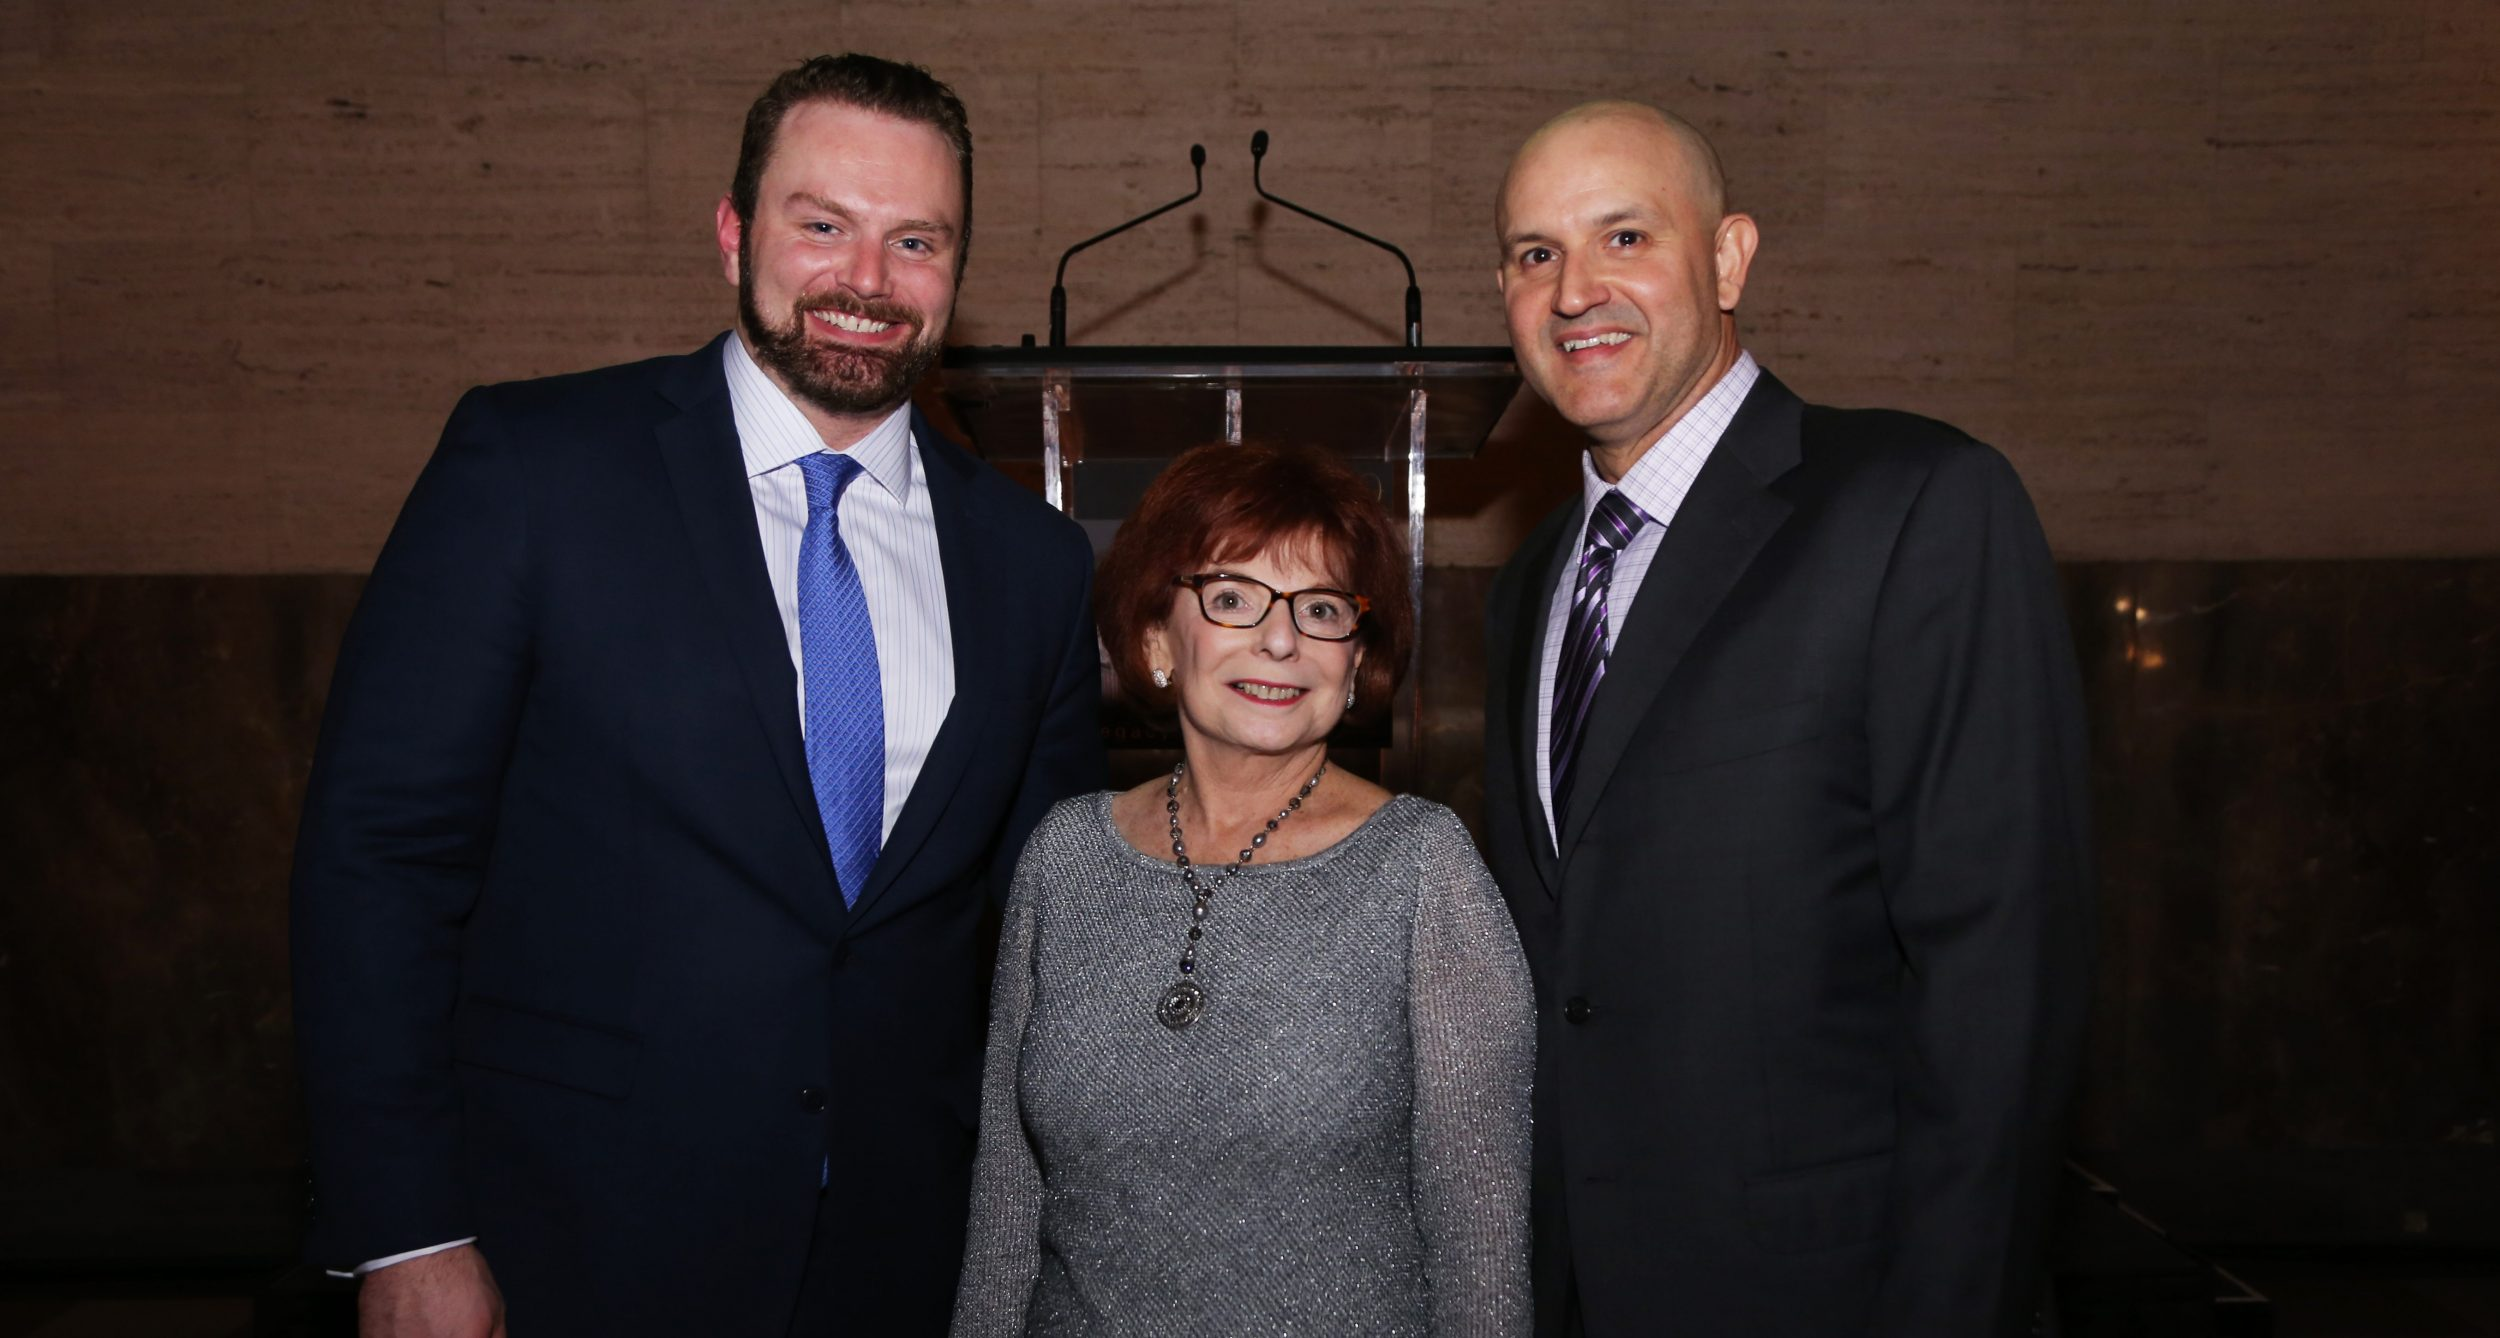 Jesse Bailey, senior executive director, advancement of University of Miami Sylvester Comprehensive Cancer Center, Ruth Young, treasurer of The Pap Corps: Champions for Cancer Research and Javier Alberto Soto, president and CEO of The Miami Foundation.